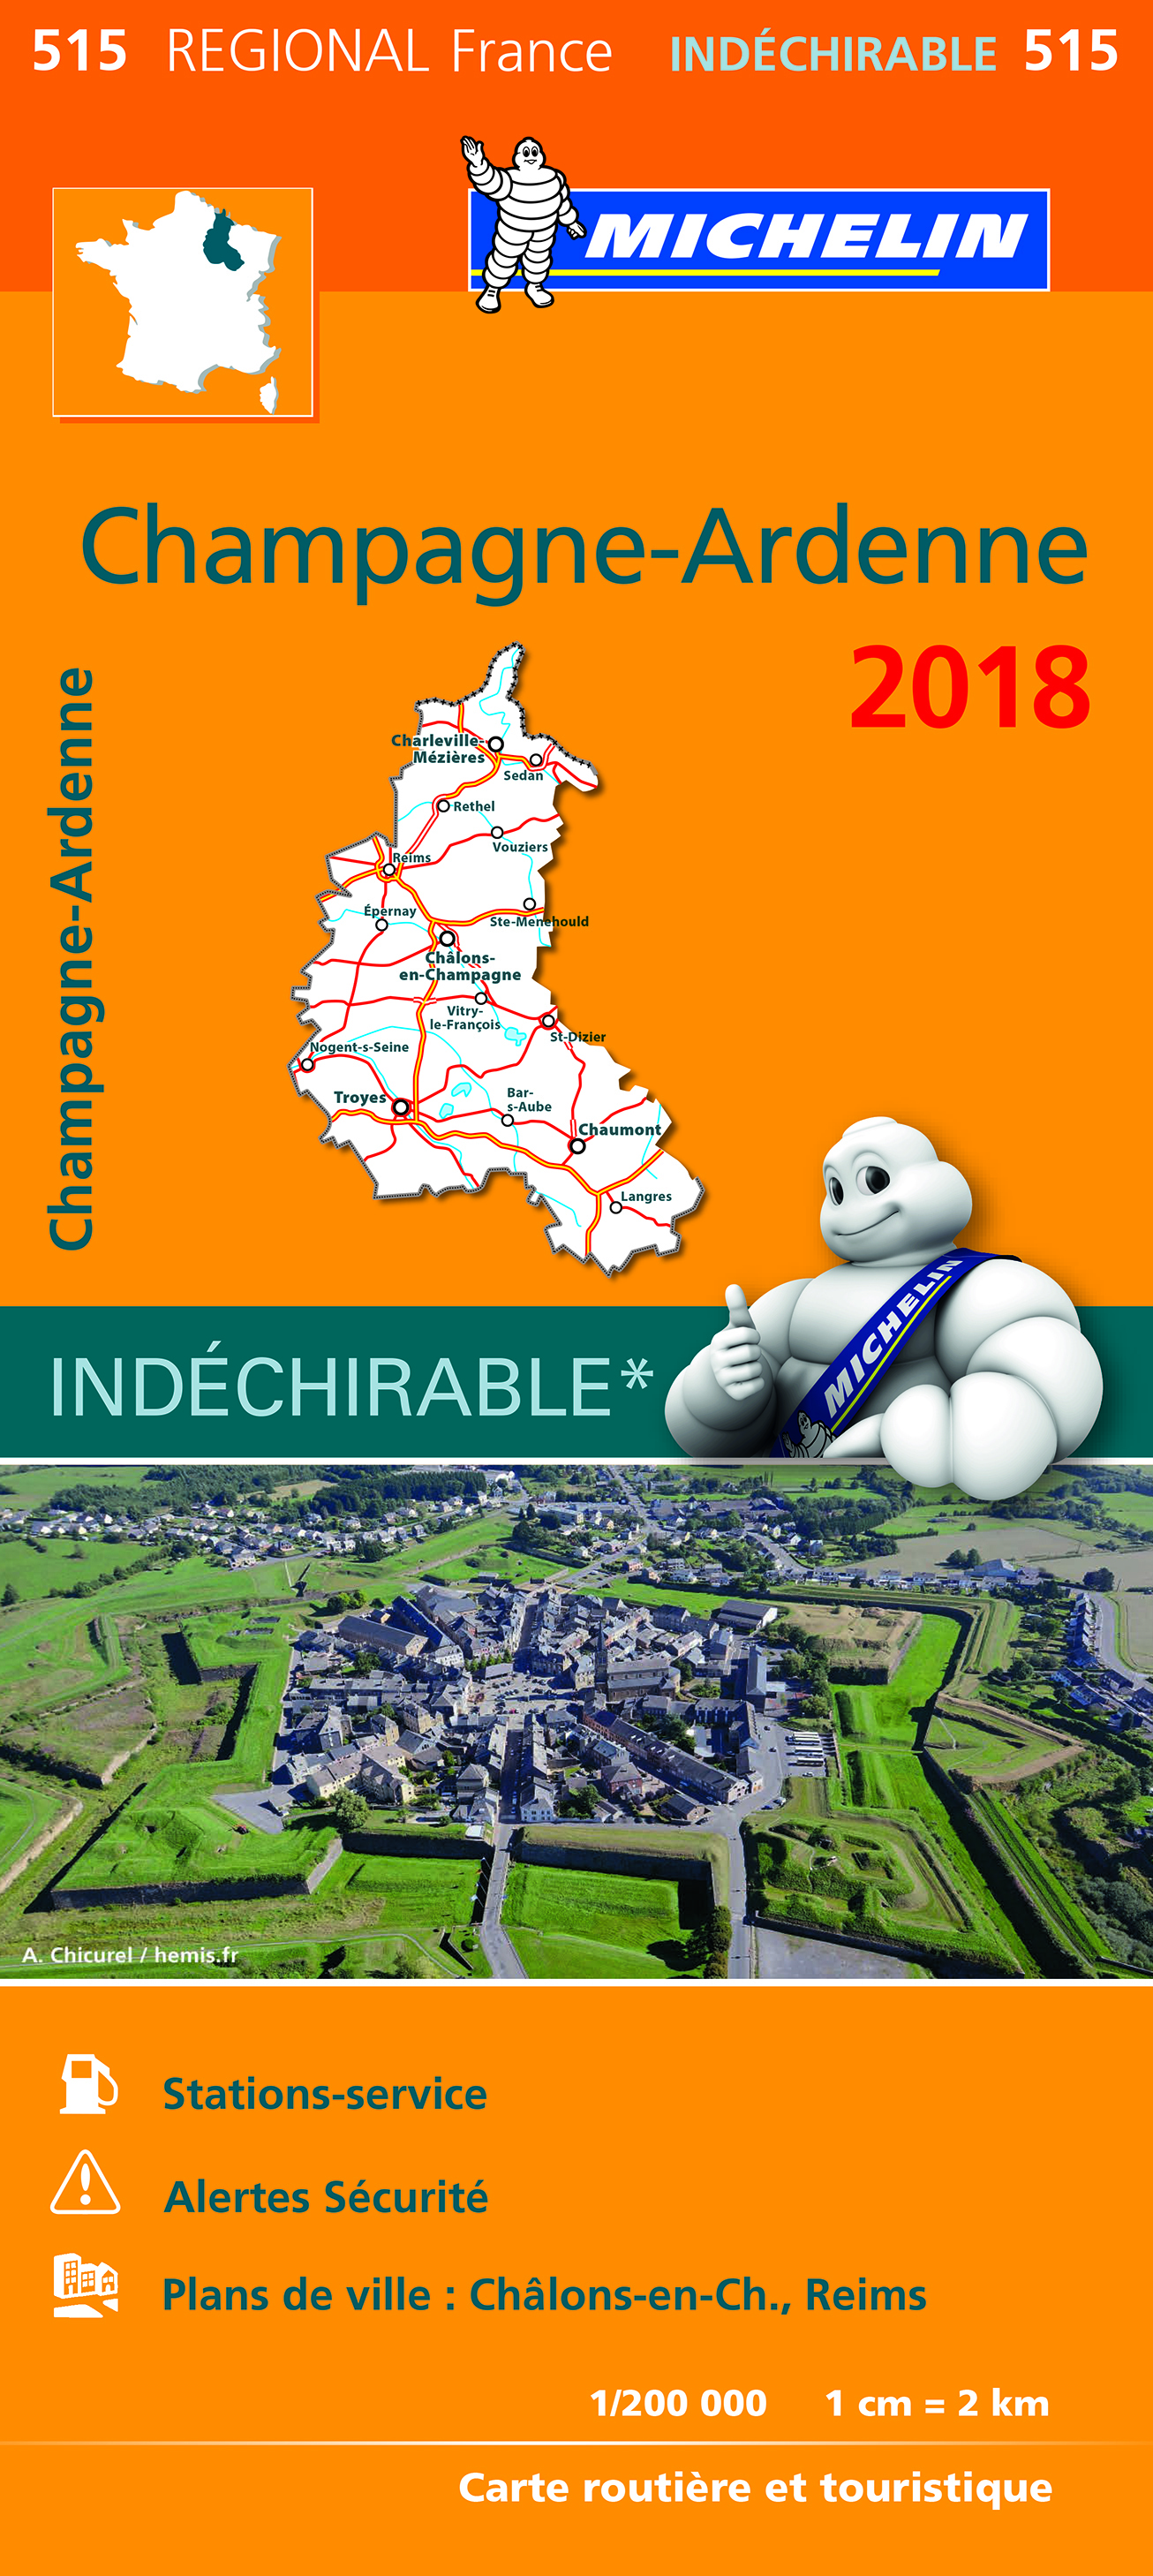 CARTE REGIONALE 515 CHAMPAGNE ARDENNE 2018